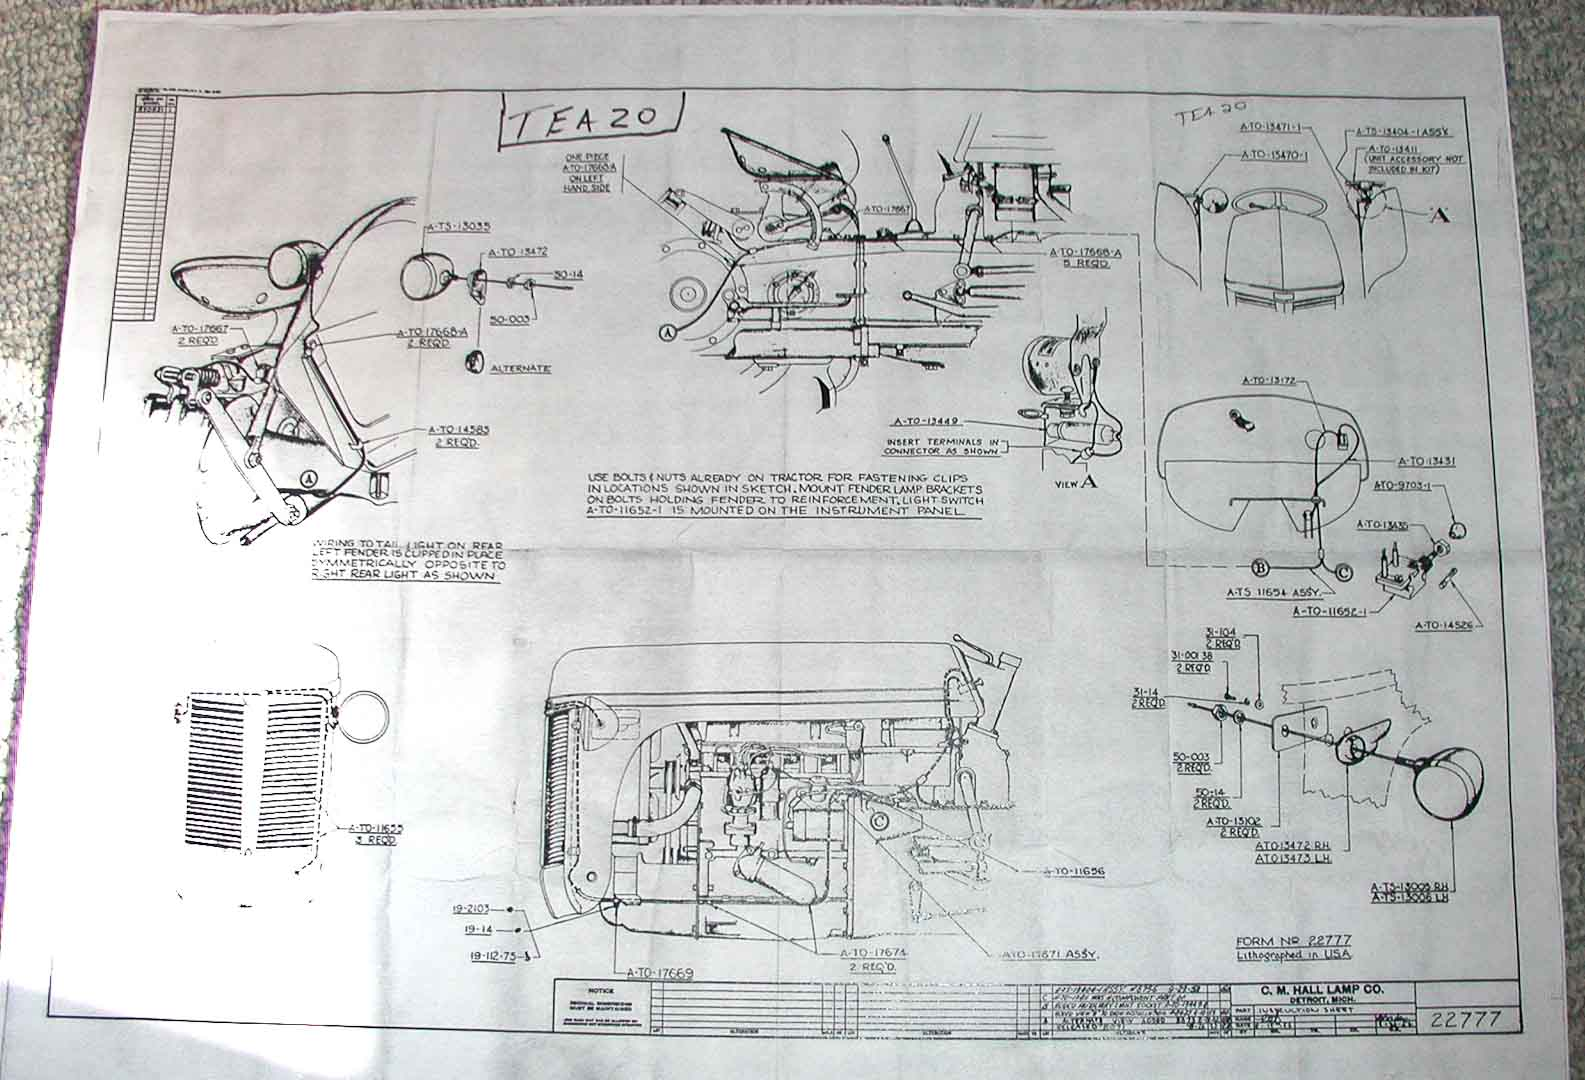 Electrical And Lighting Diagrams Ferguson Enthusiasts Of North America Wiring A Light Diagram Tea20 Harness